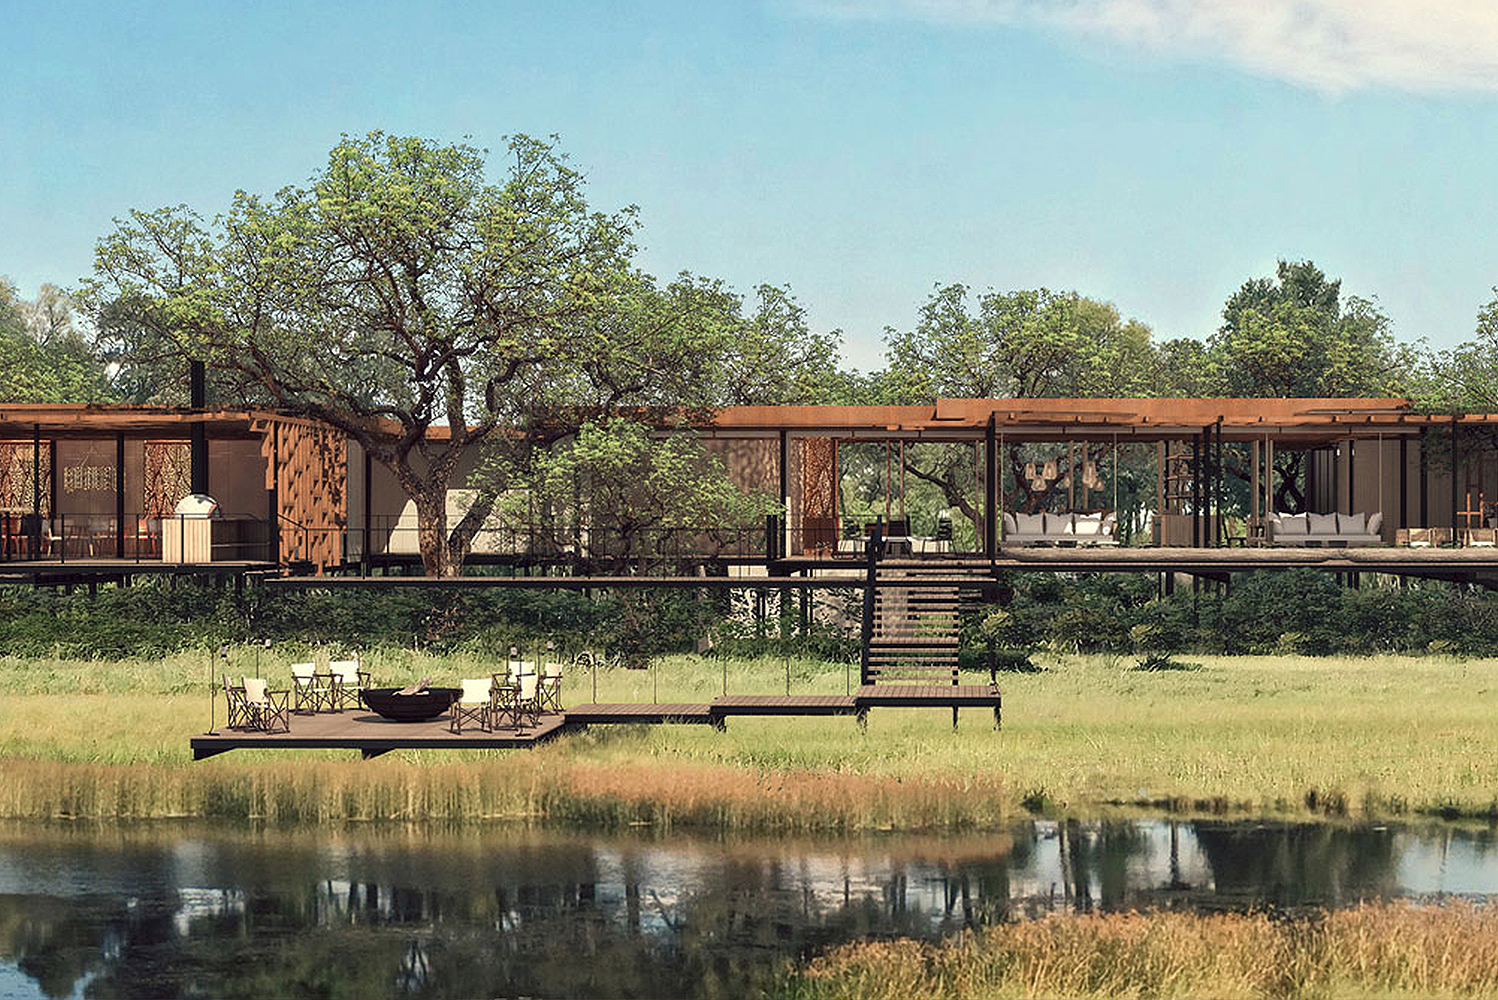 Wilderness Safaris is slated to open Qorokwe Camp, a new Wilderness Safaris Classic Camp in Botswana, this December.